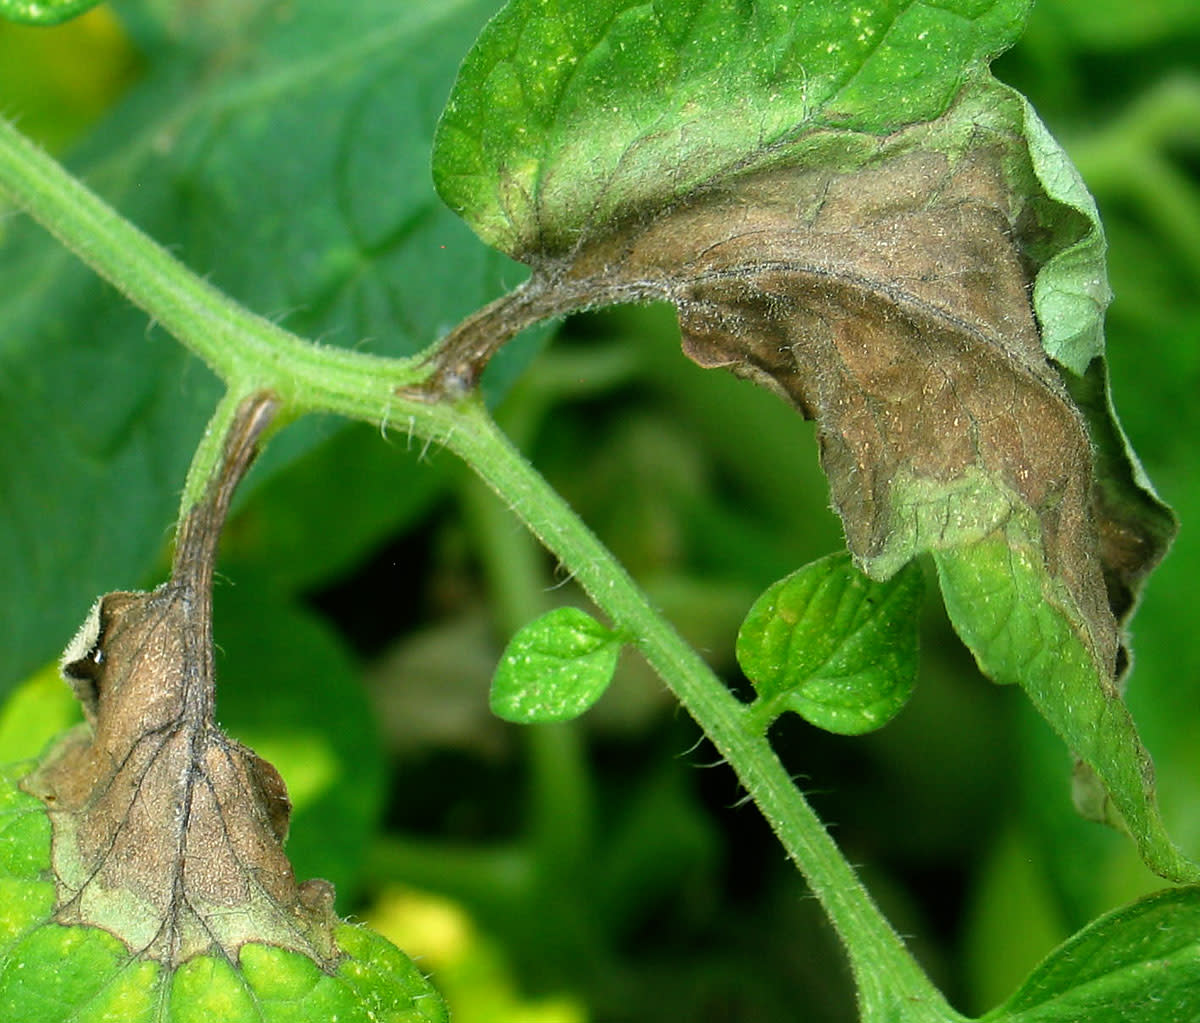 Late blight on leaves of tomato plant